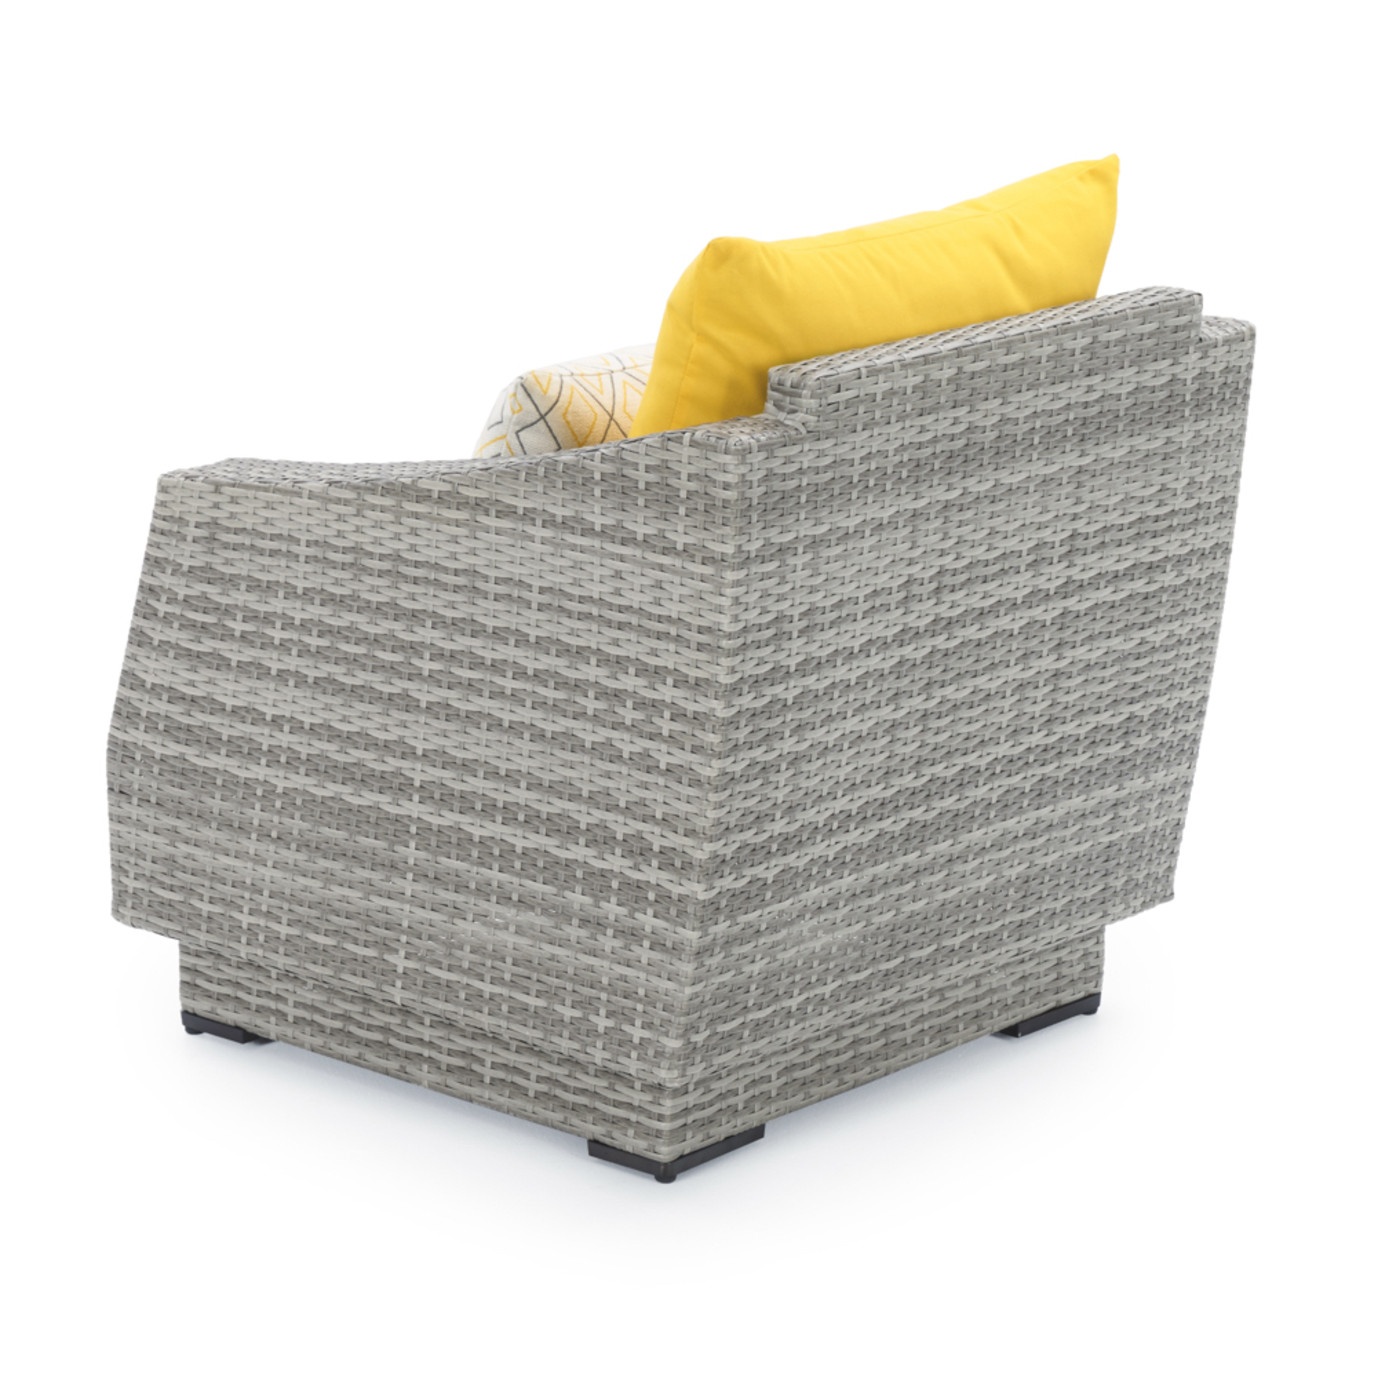 Cannes™ 5pc Club & Ottoman Set - Sunflower Yellow